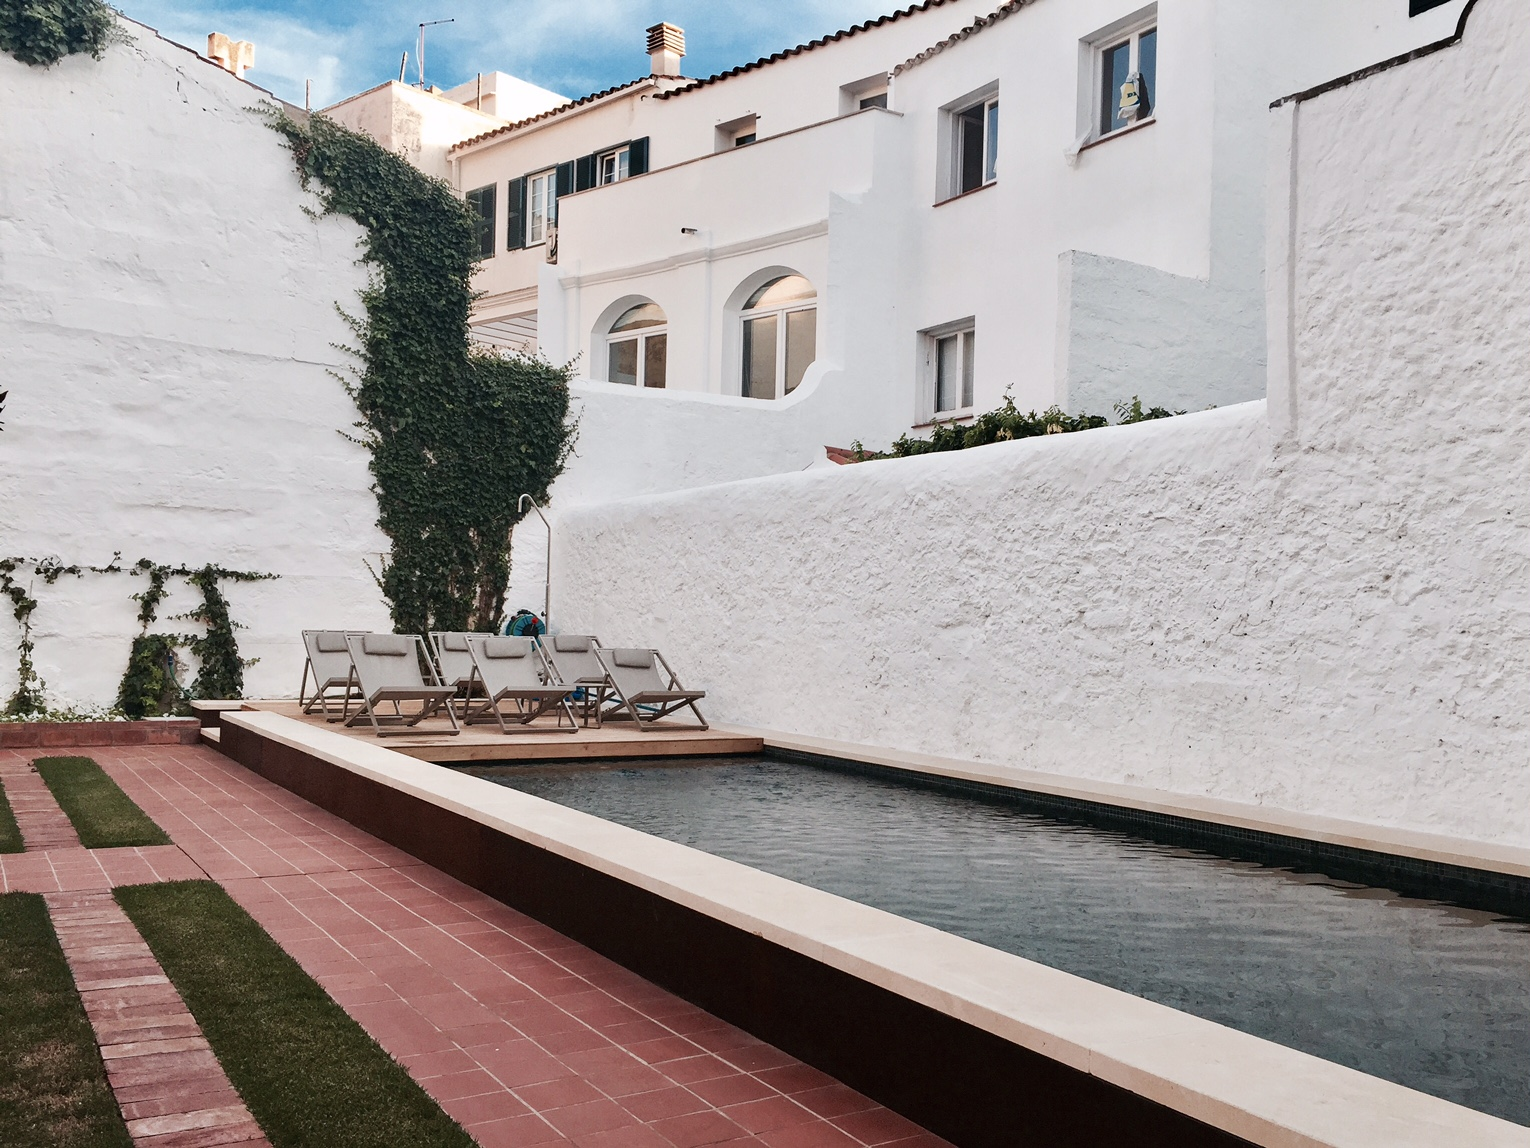 The pool and garden at Casa Ladico